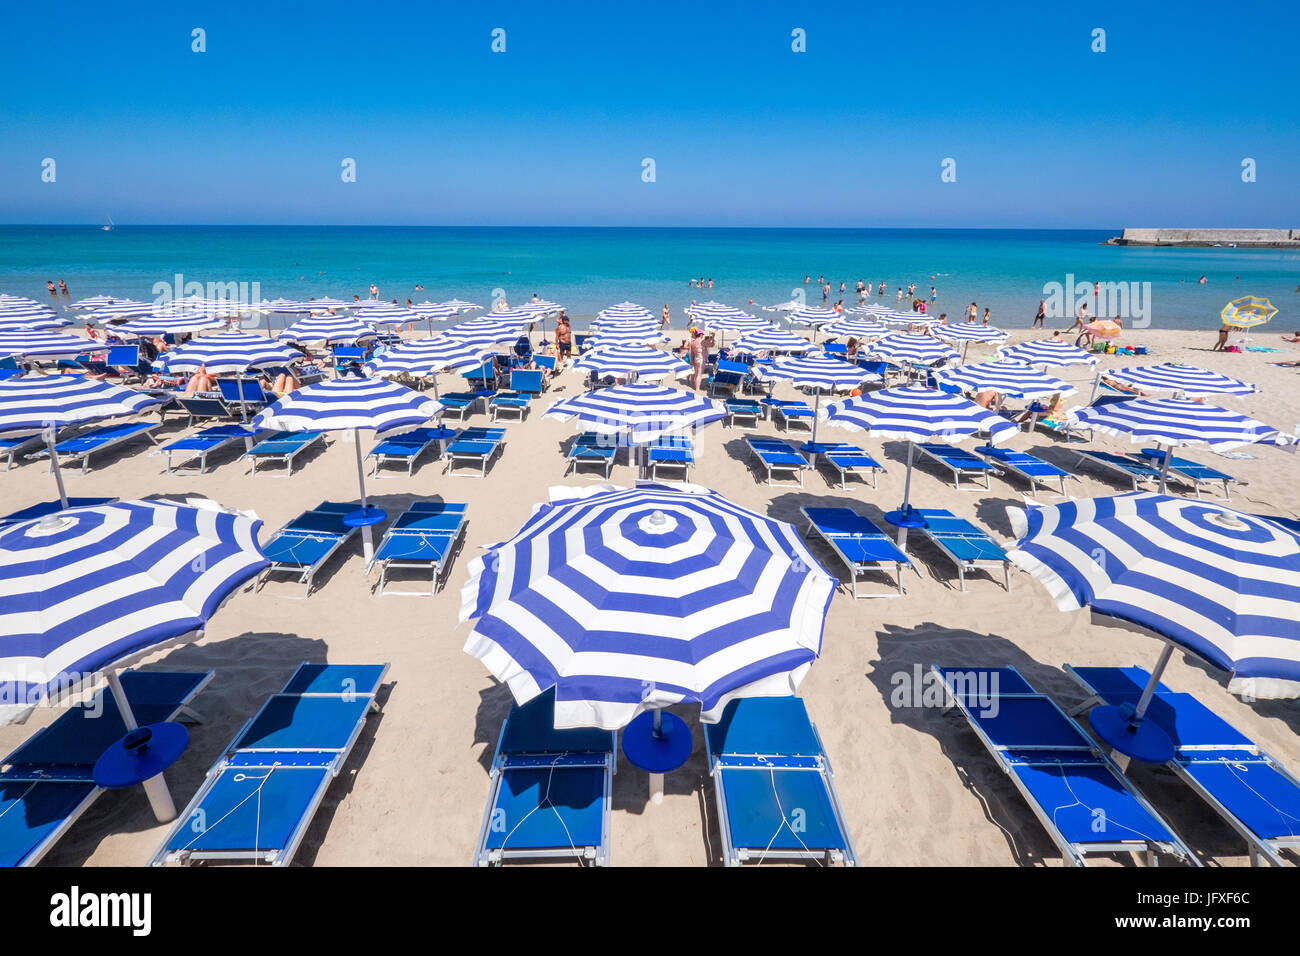 The beach in Cefalù, Sicily. Historic Cefalù is a major tourist destination on Sicily. - Stock Image